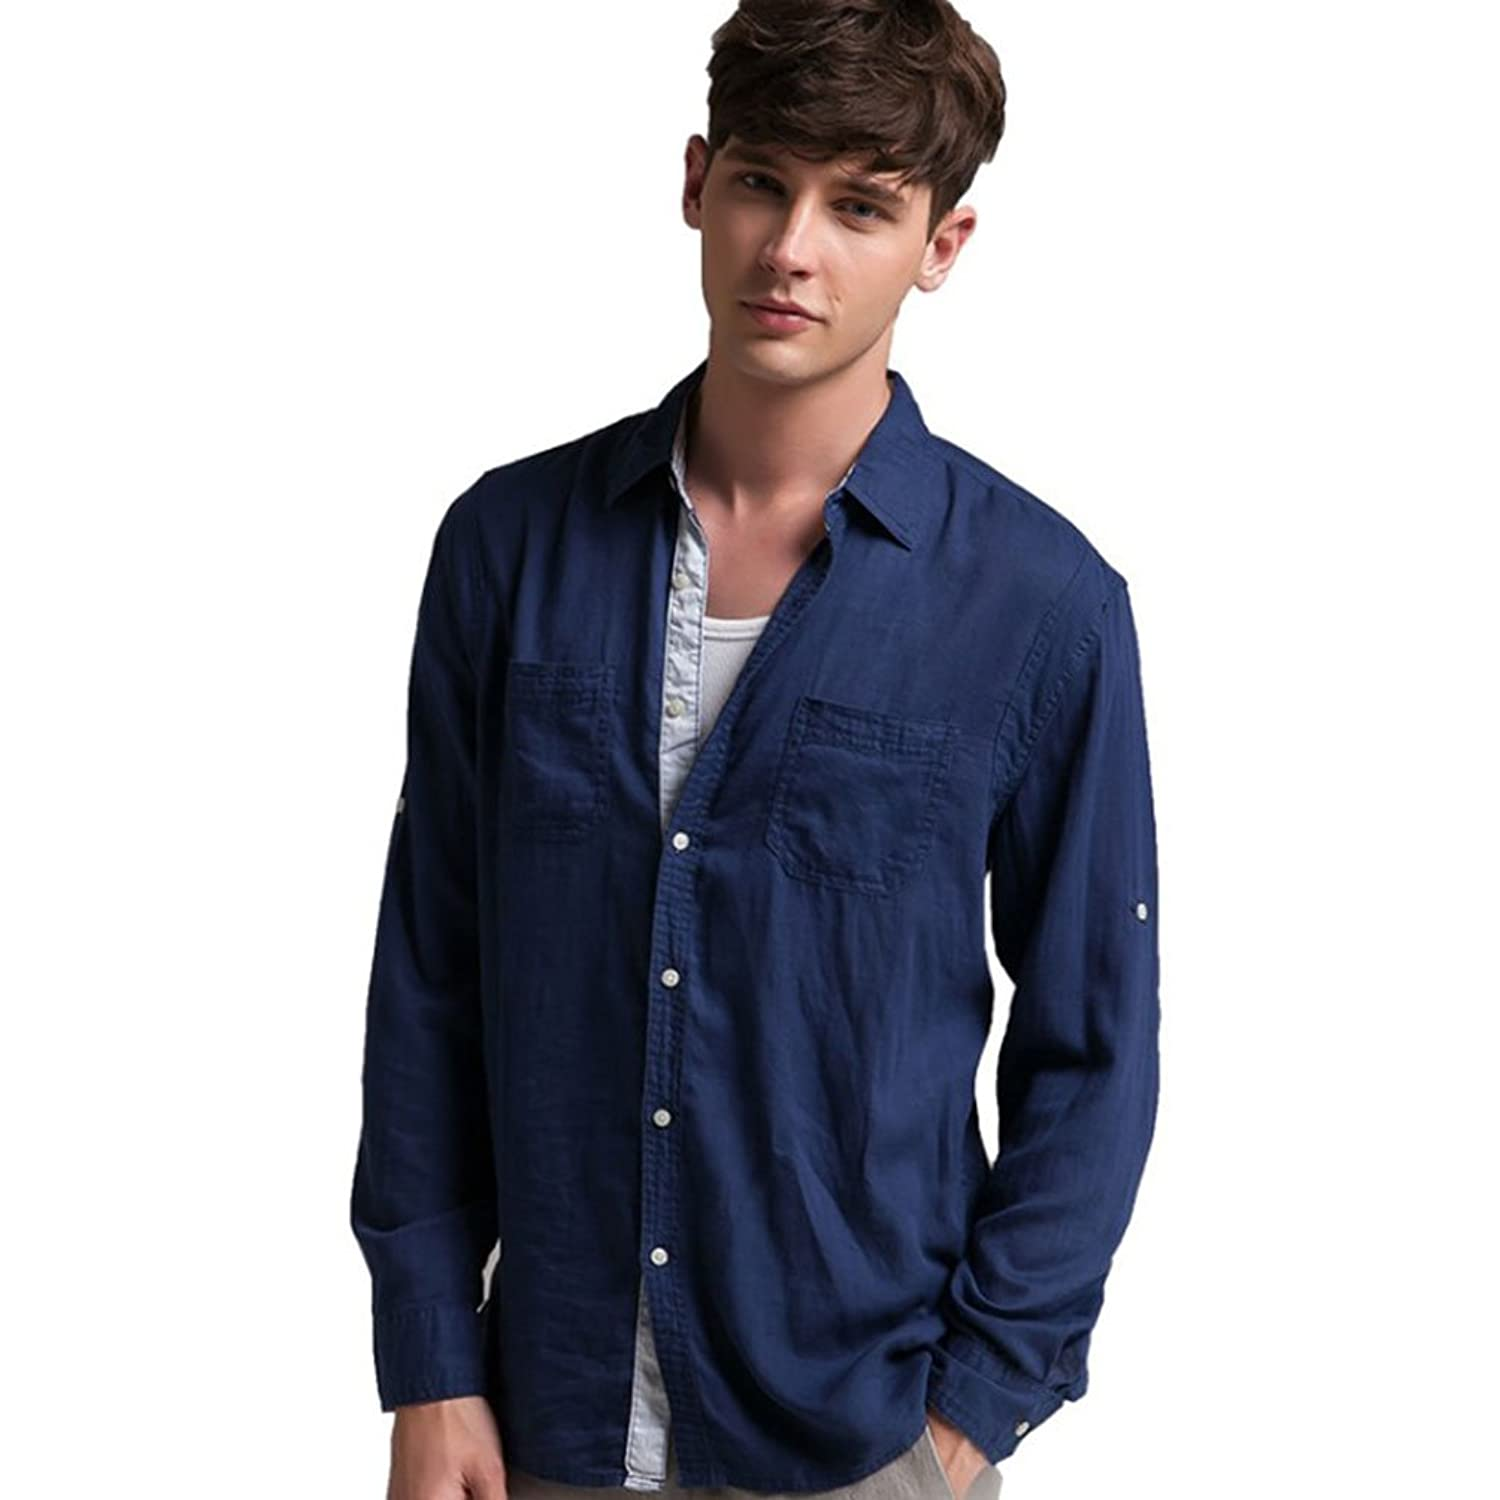 Men's Long Sleeve Shirts Spring Autumn Casual Tops Outwear